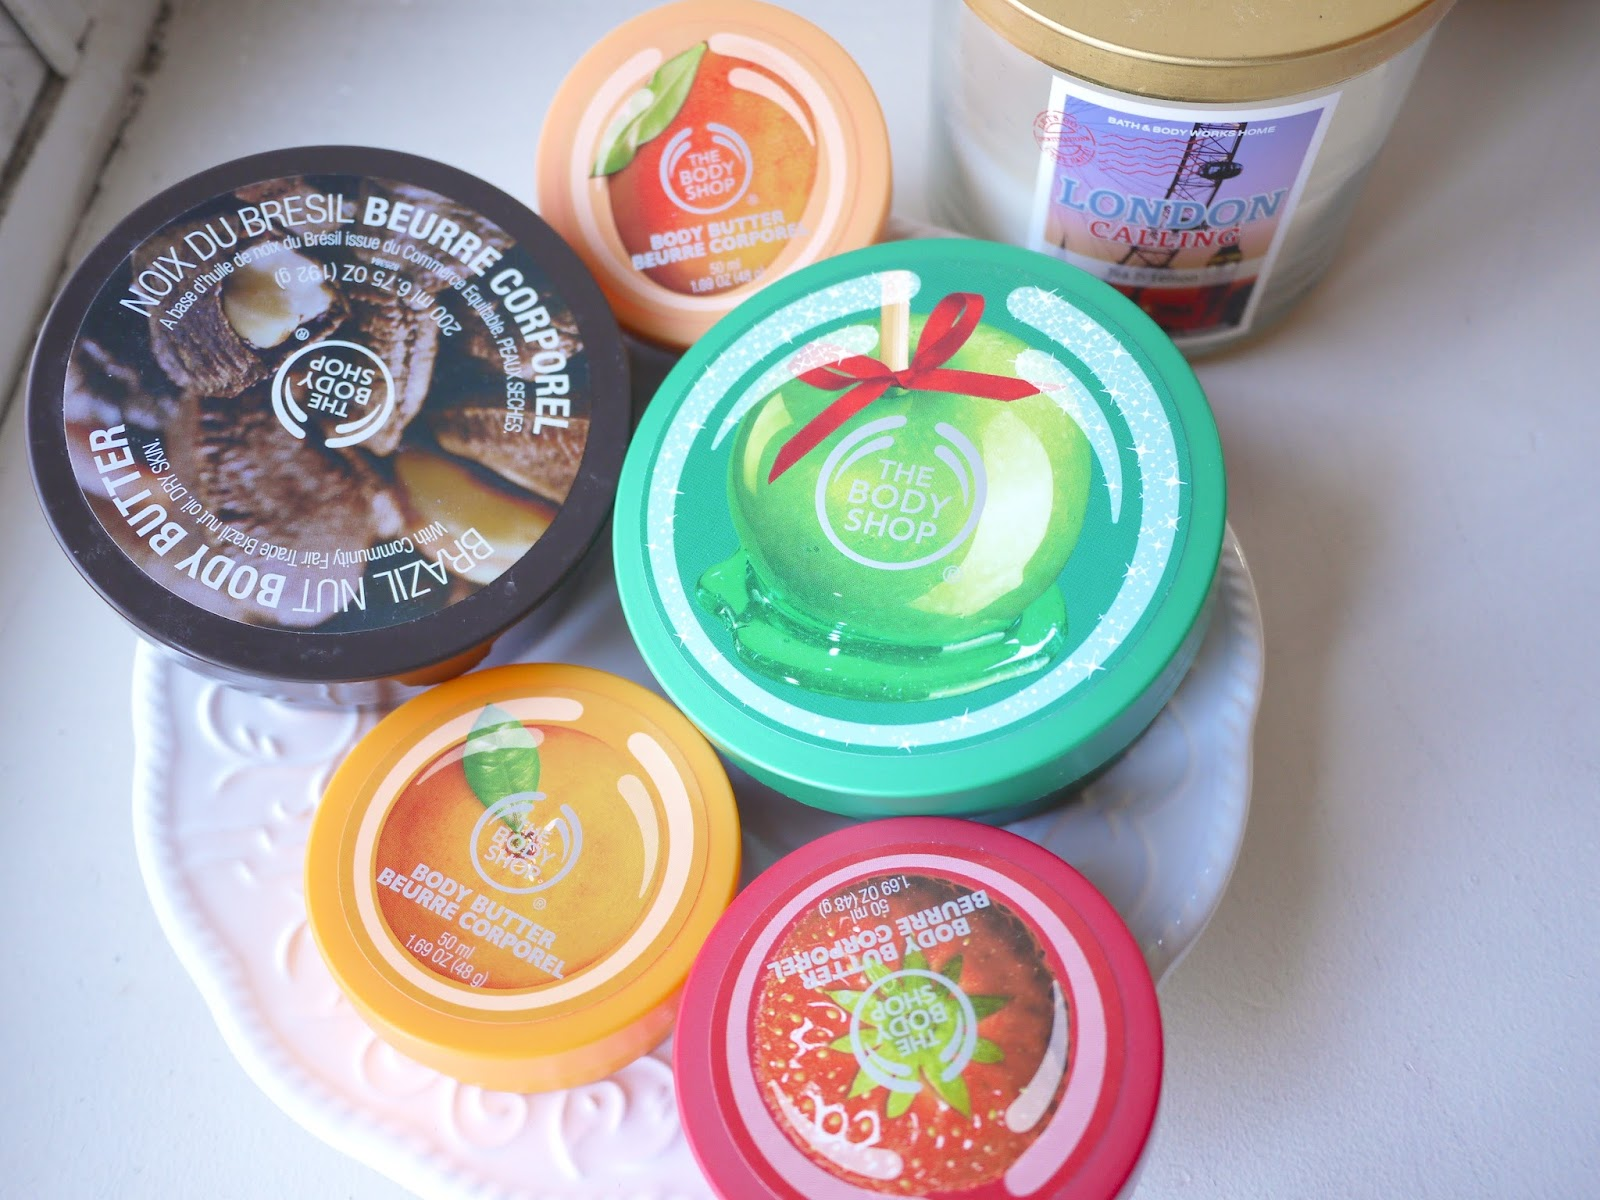 Favorite Body Shop Body Butters